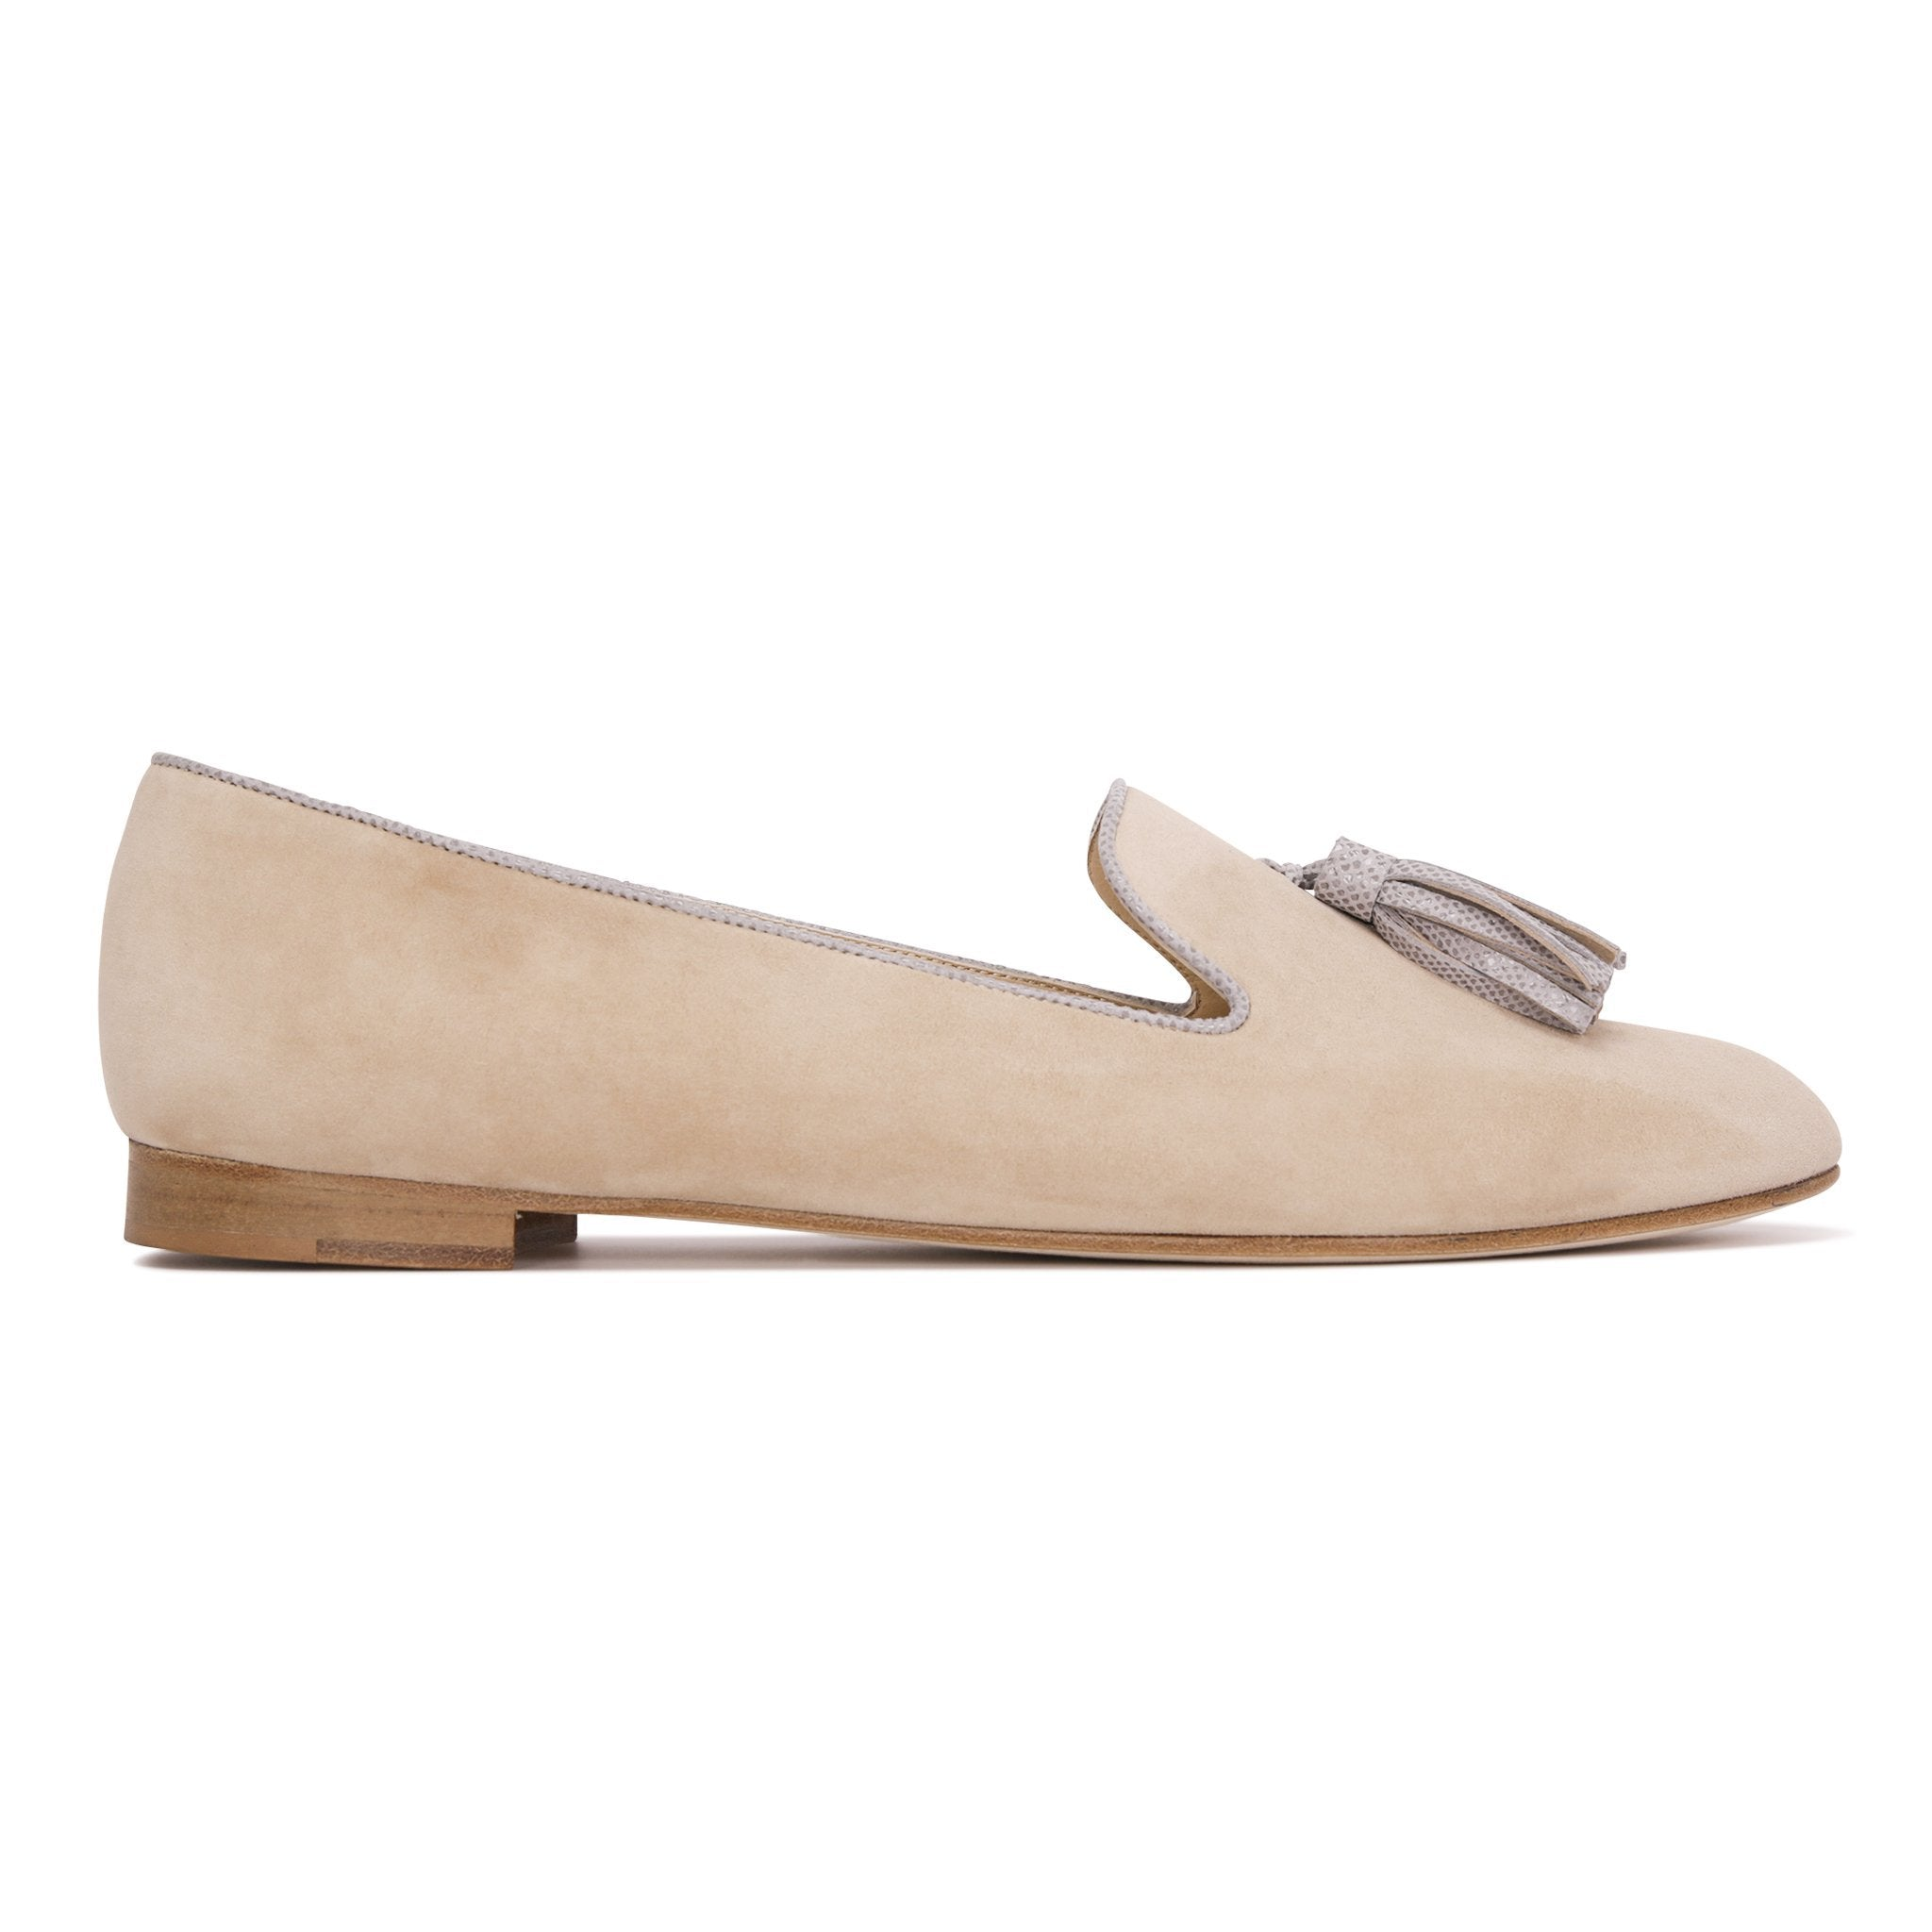 PARMA - Velukid Tan + Karung Grigio, VIAJIYU - Women's Hand Made Sustainable Luxury Shoes. Made in Italy. Made to Order.